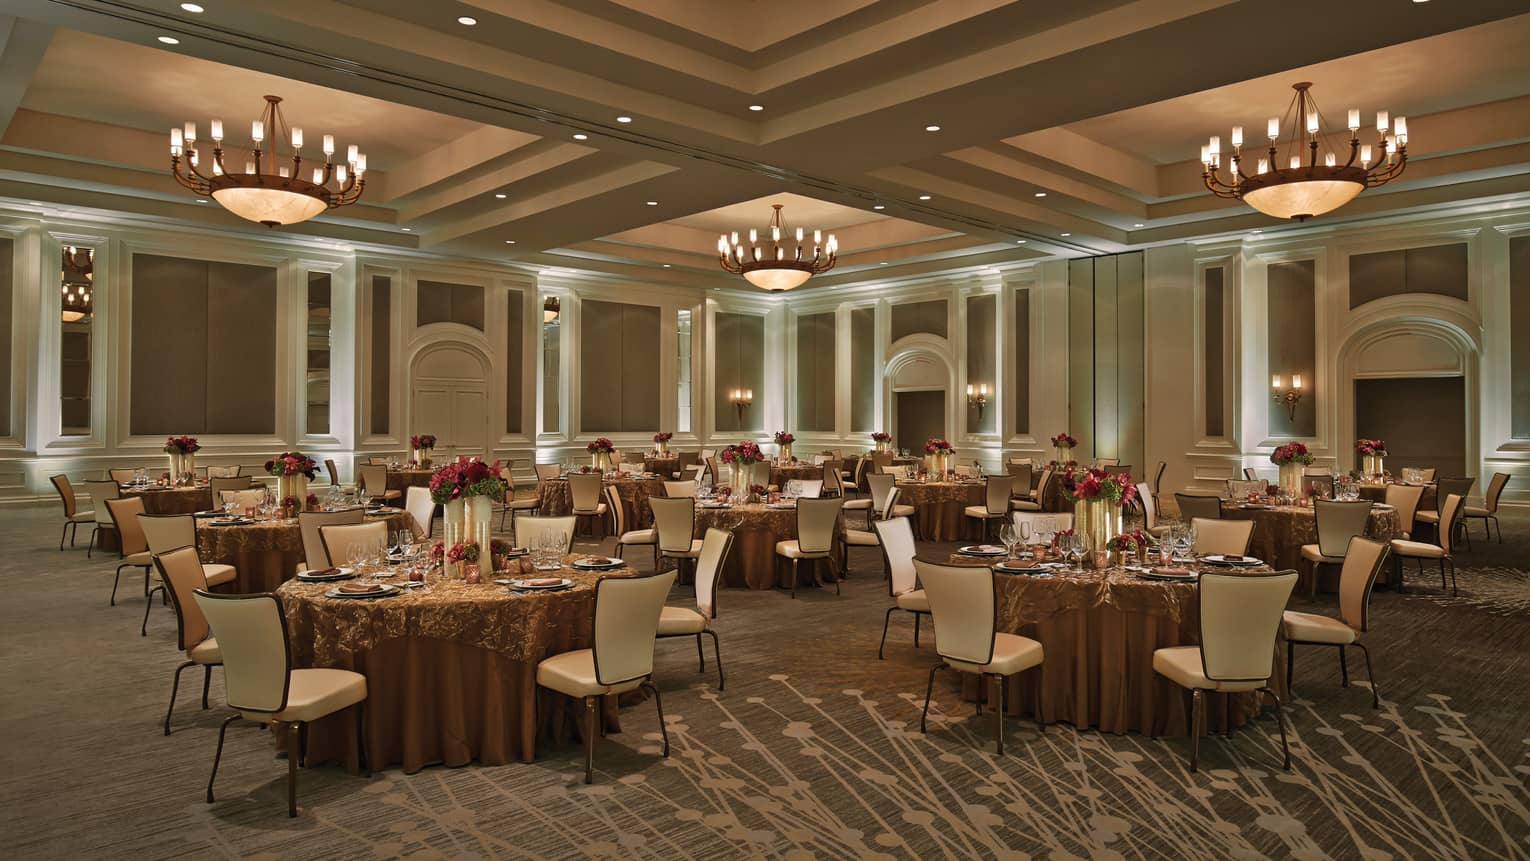 Small round dining tables under large dome lights in Acacia Ballroom